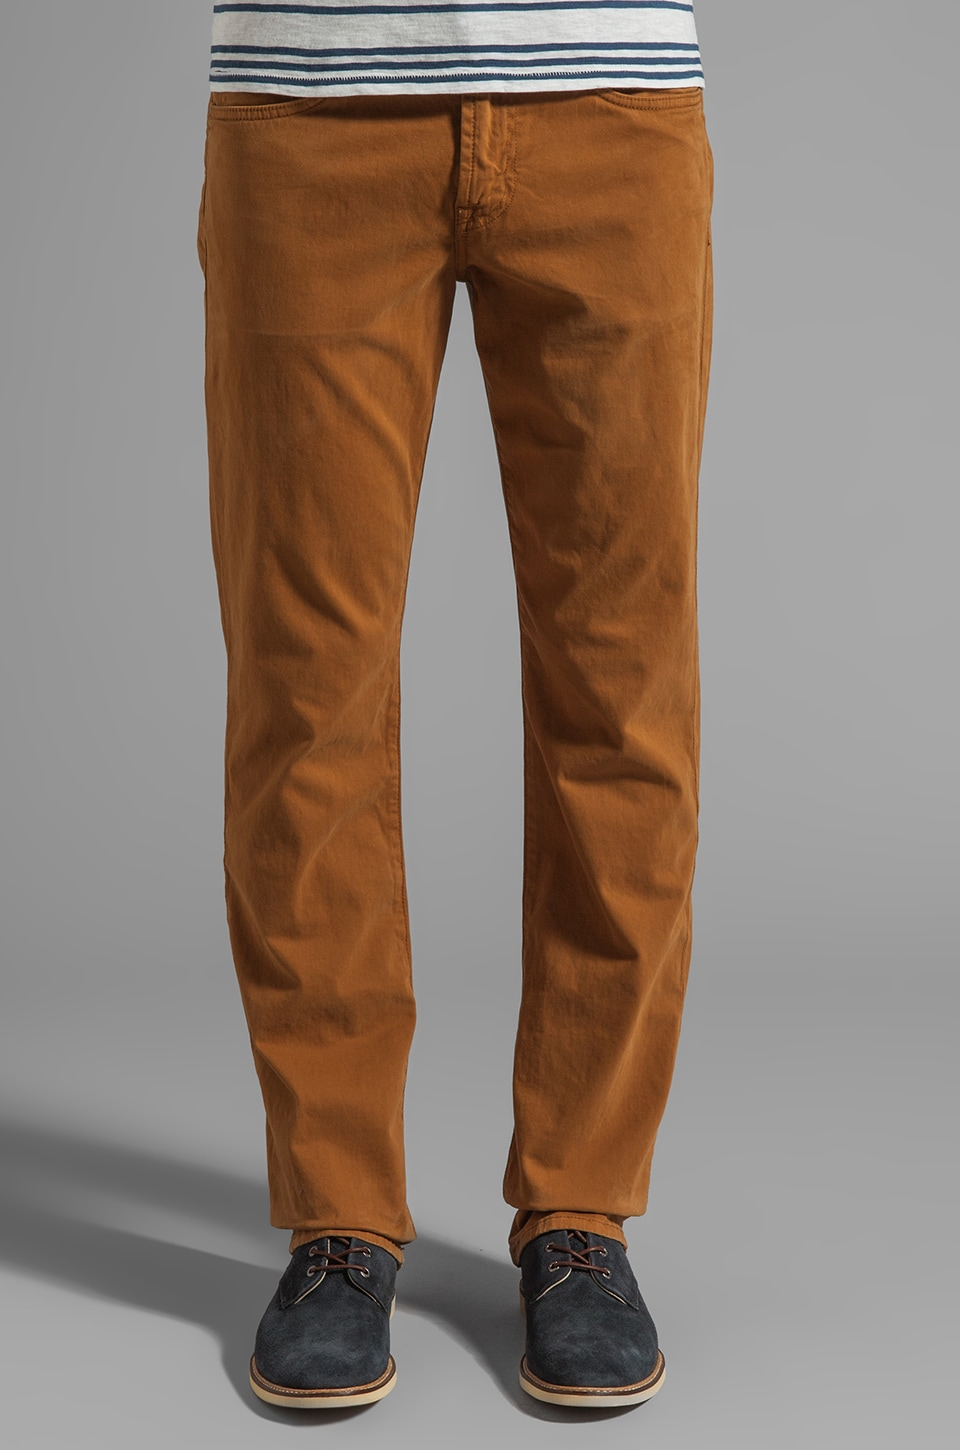 7 For All Mankind Carsen Chino in Golden Wheat